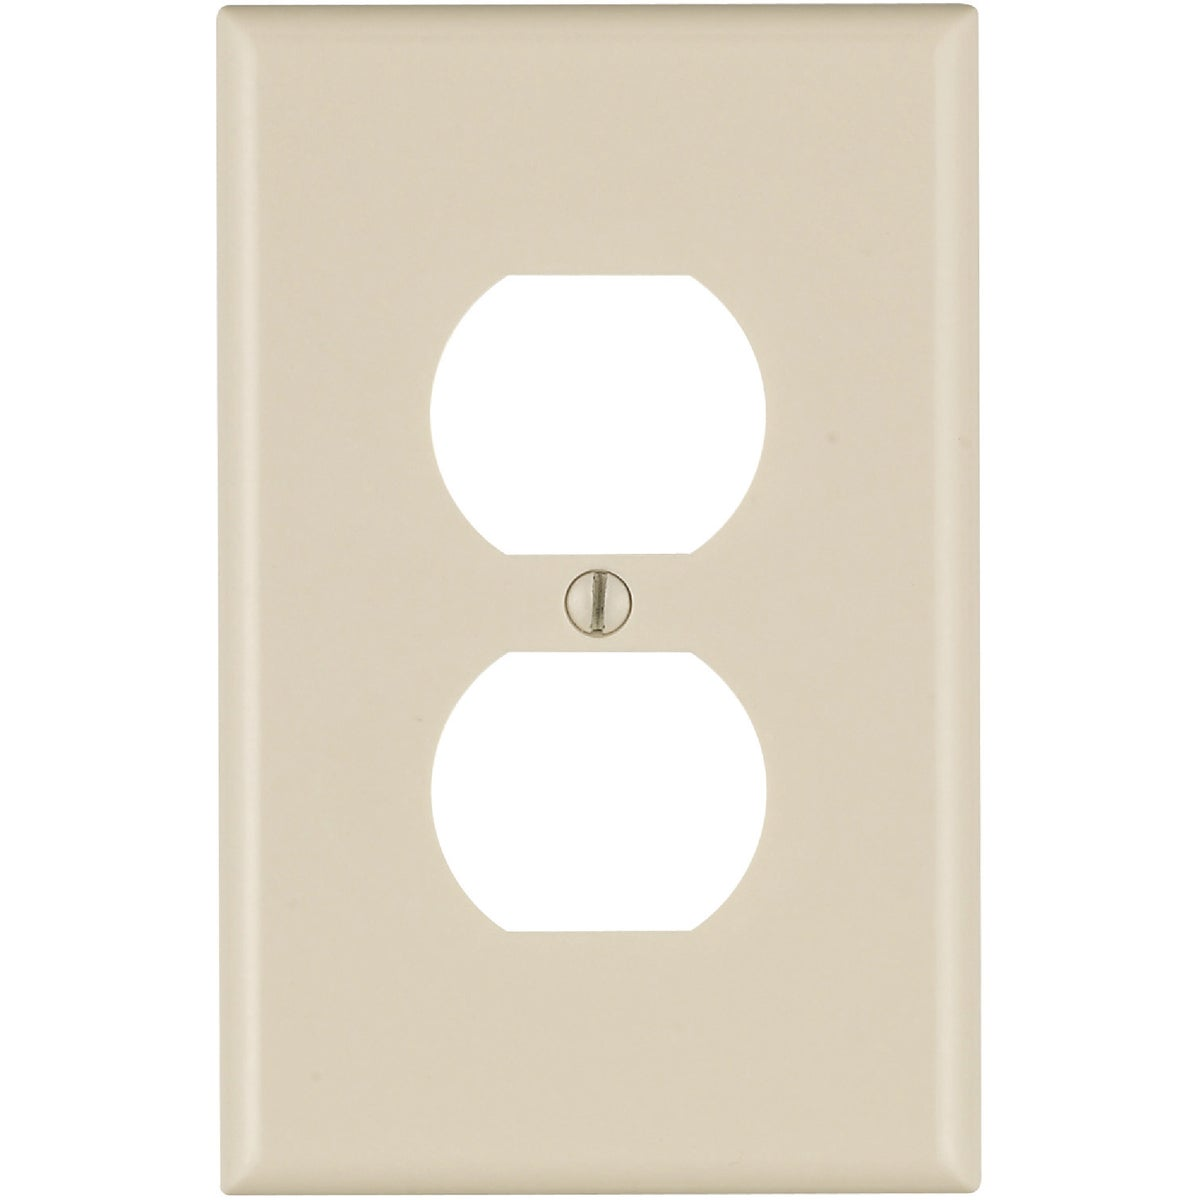 LT ALM DUPLX WALLPLATE - 025-80503-00T by Leviton Mfg Co